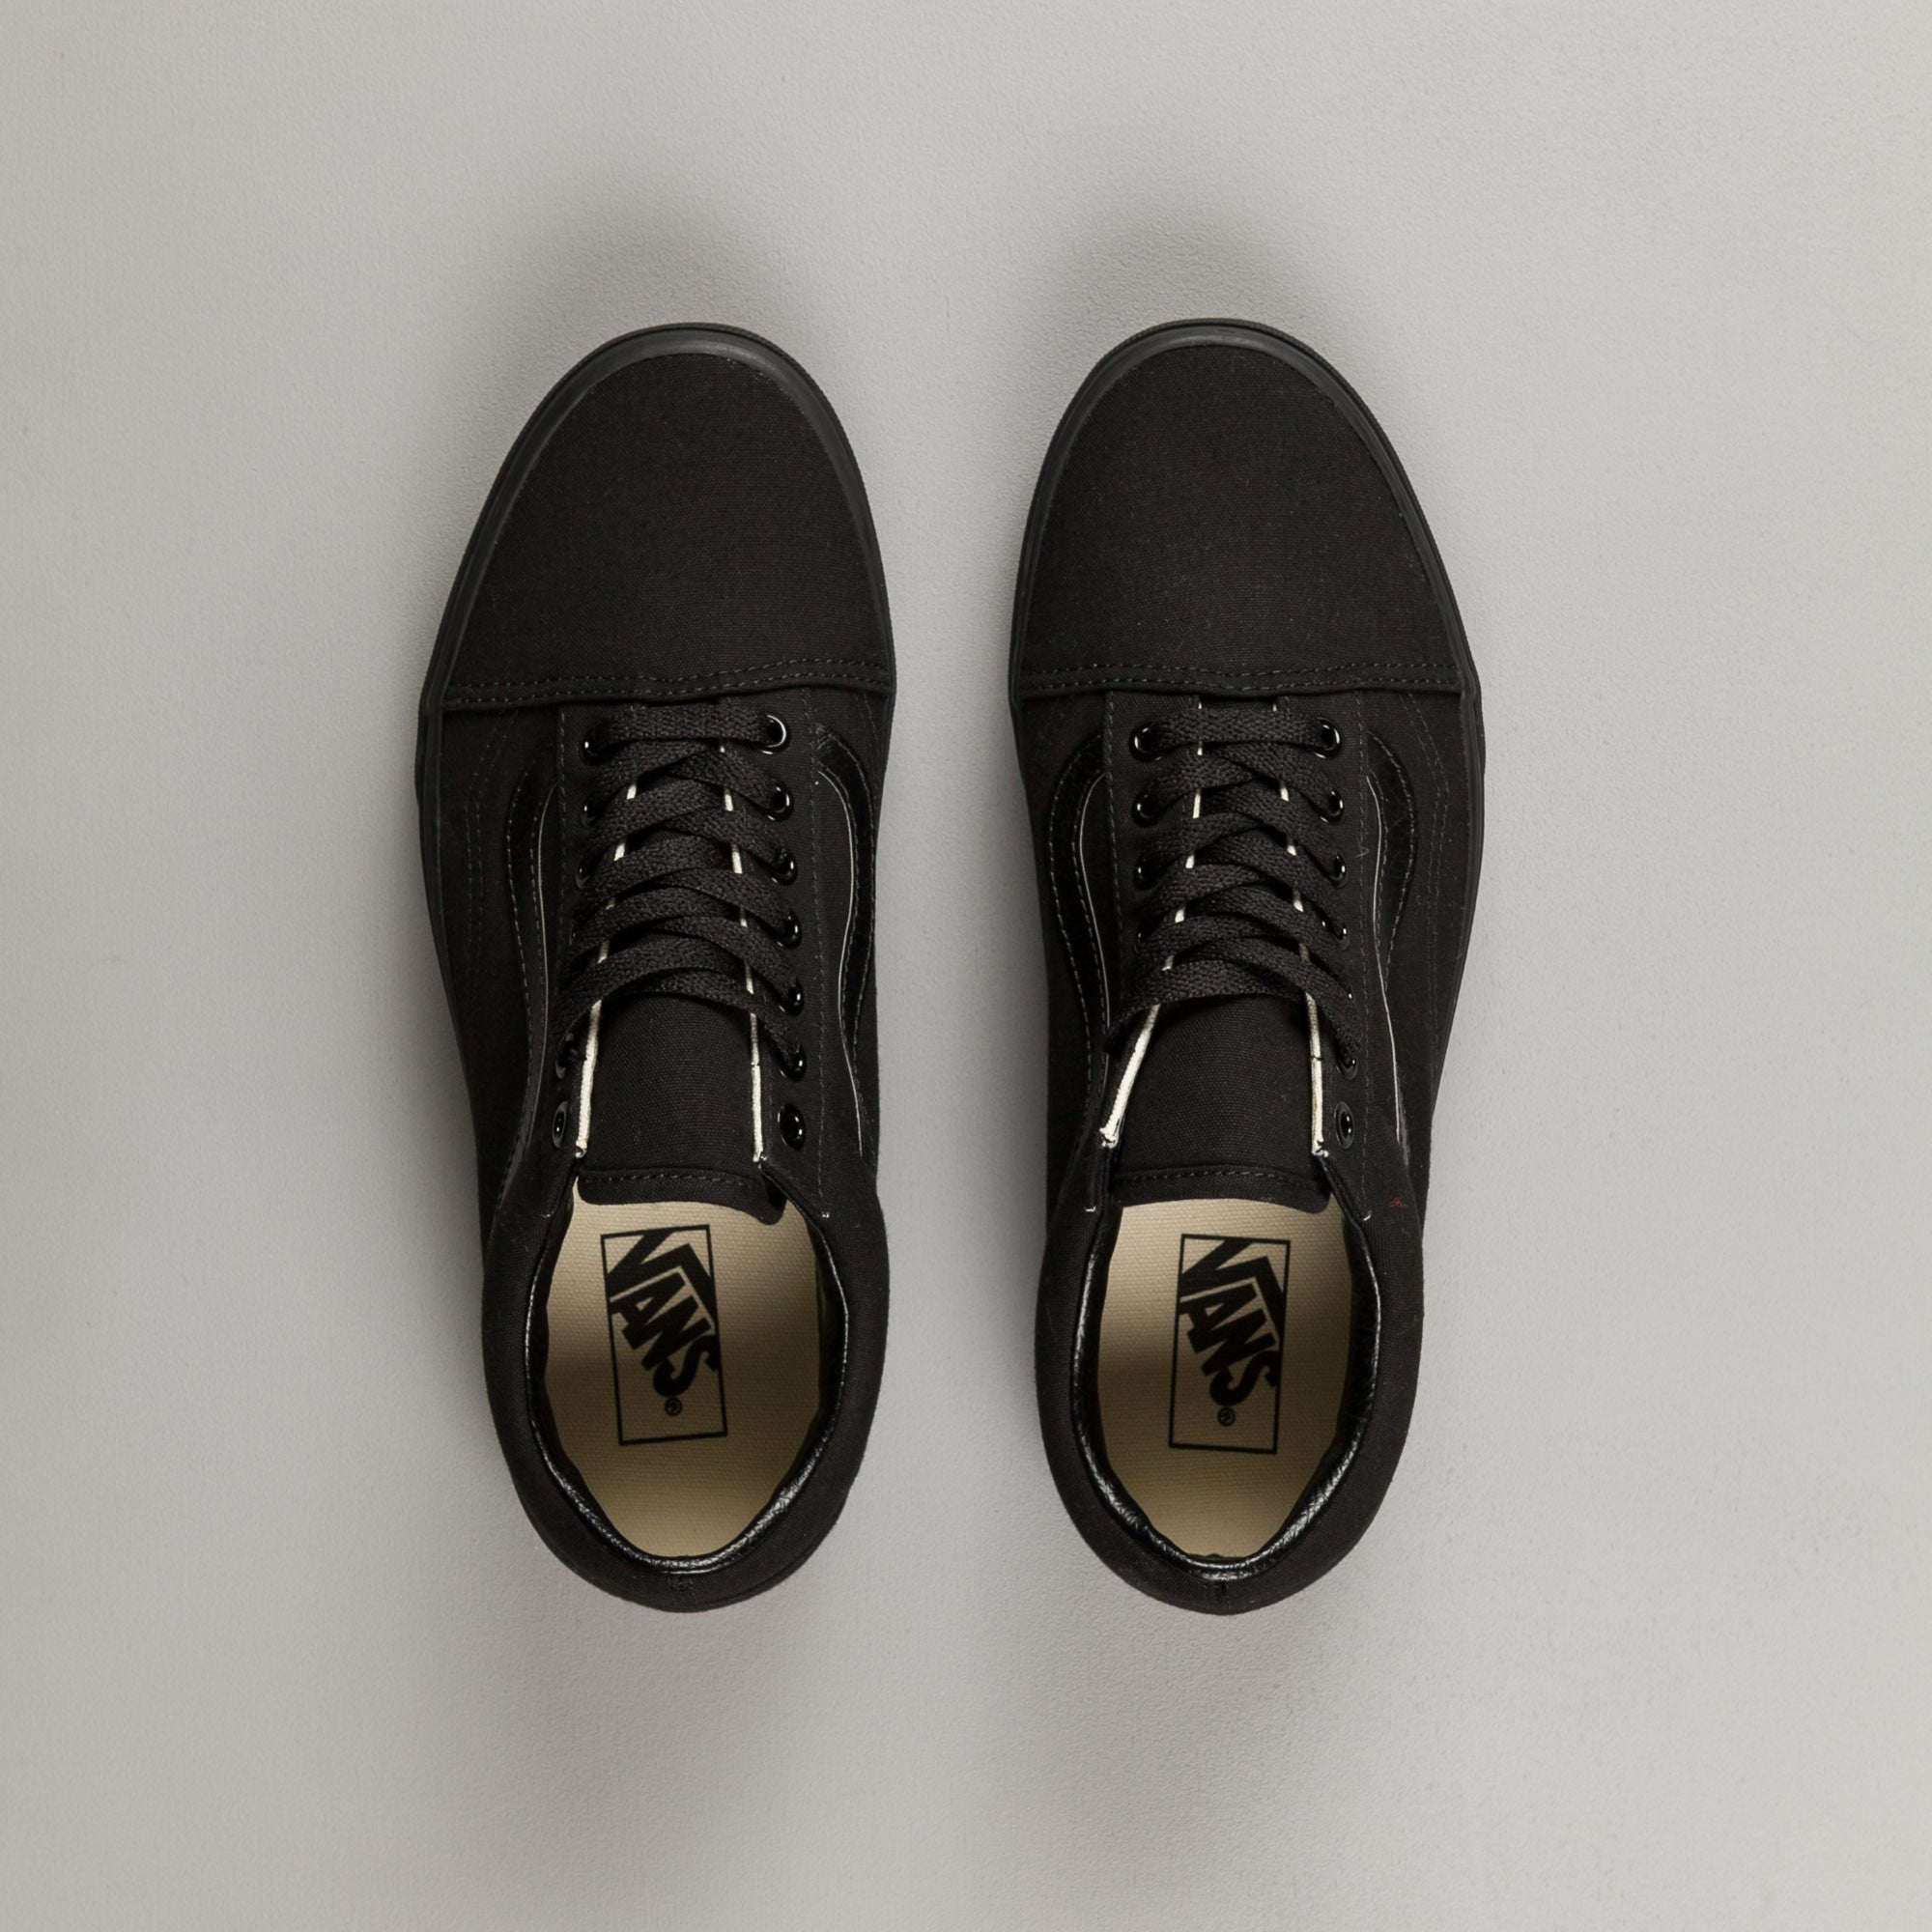 d719ef3ea0cff Acquista vans old skool total black - OFF46% sconti